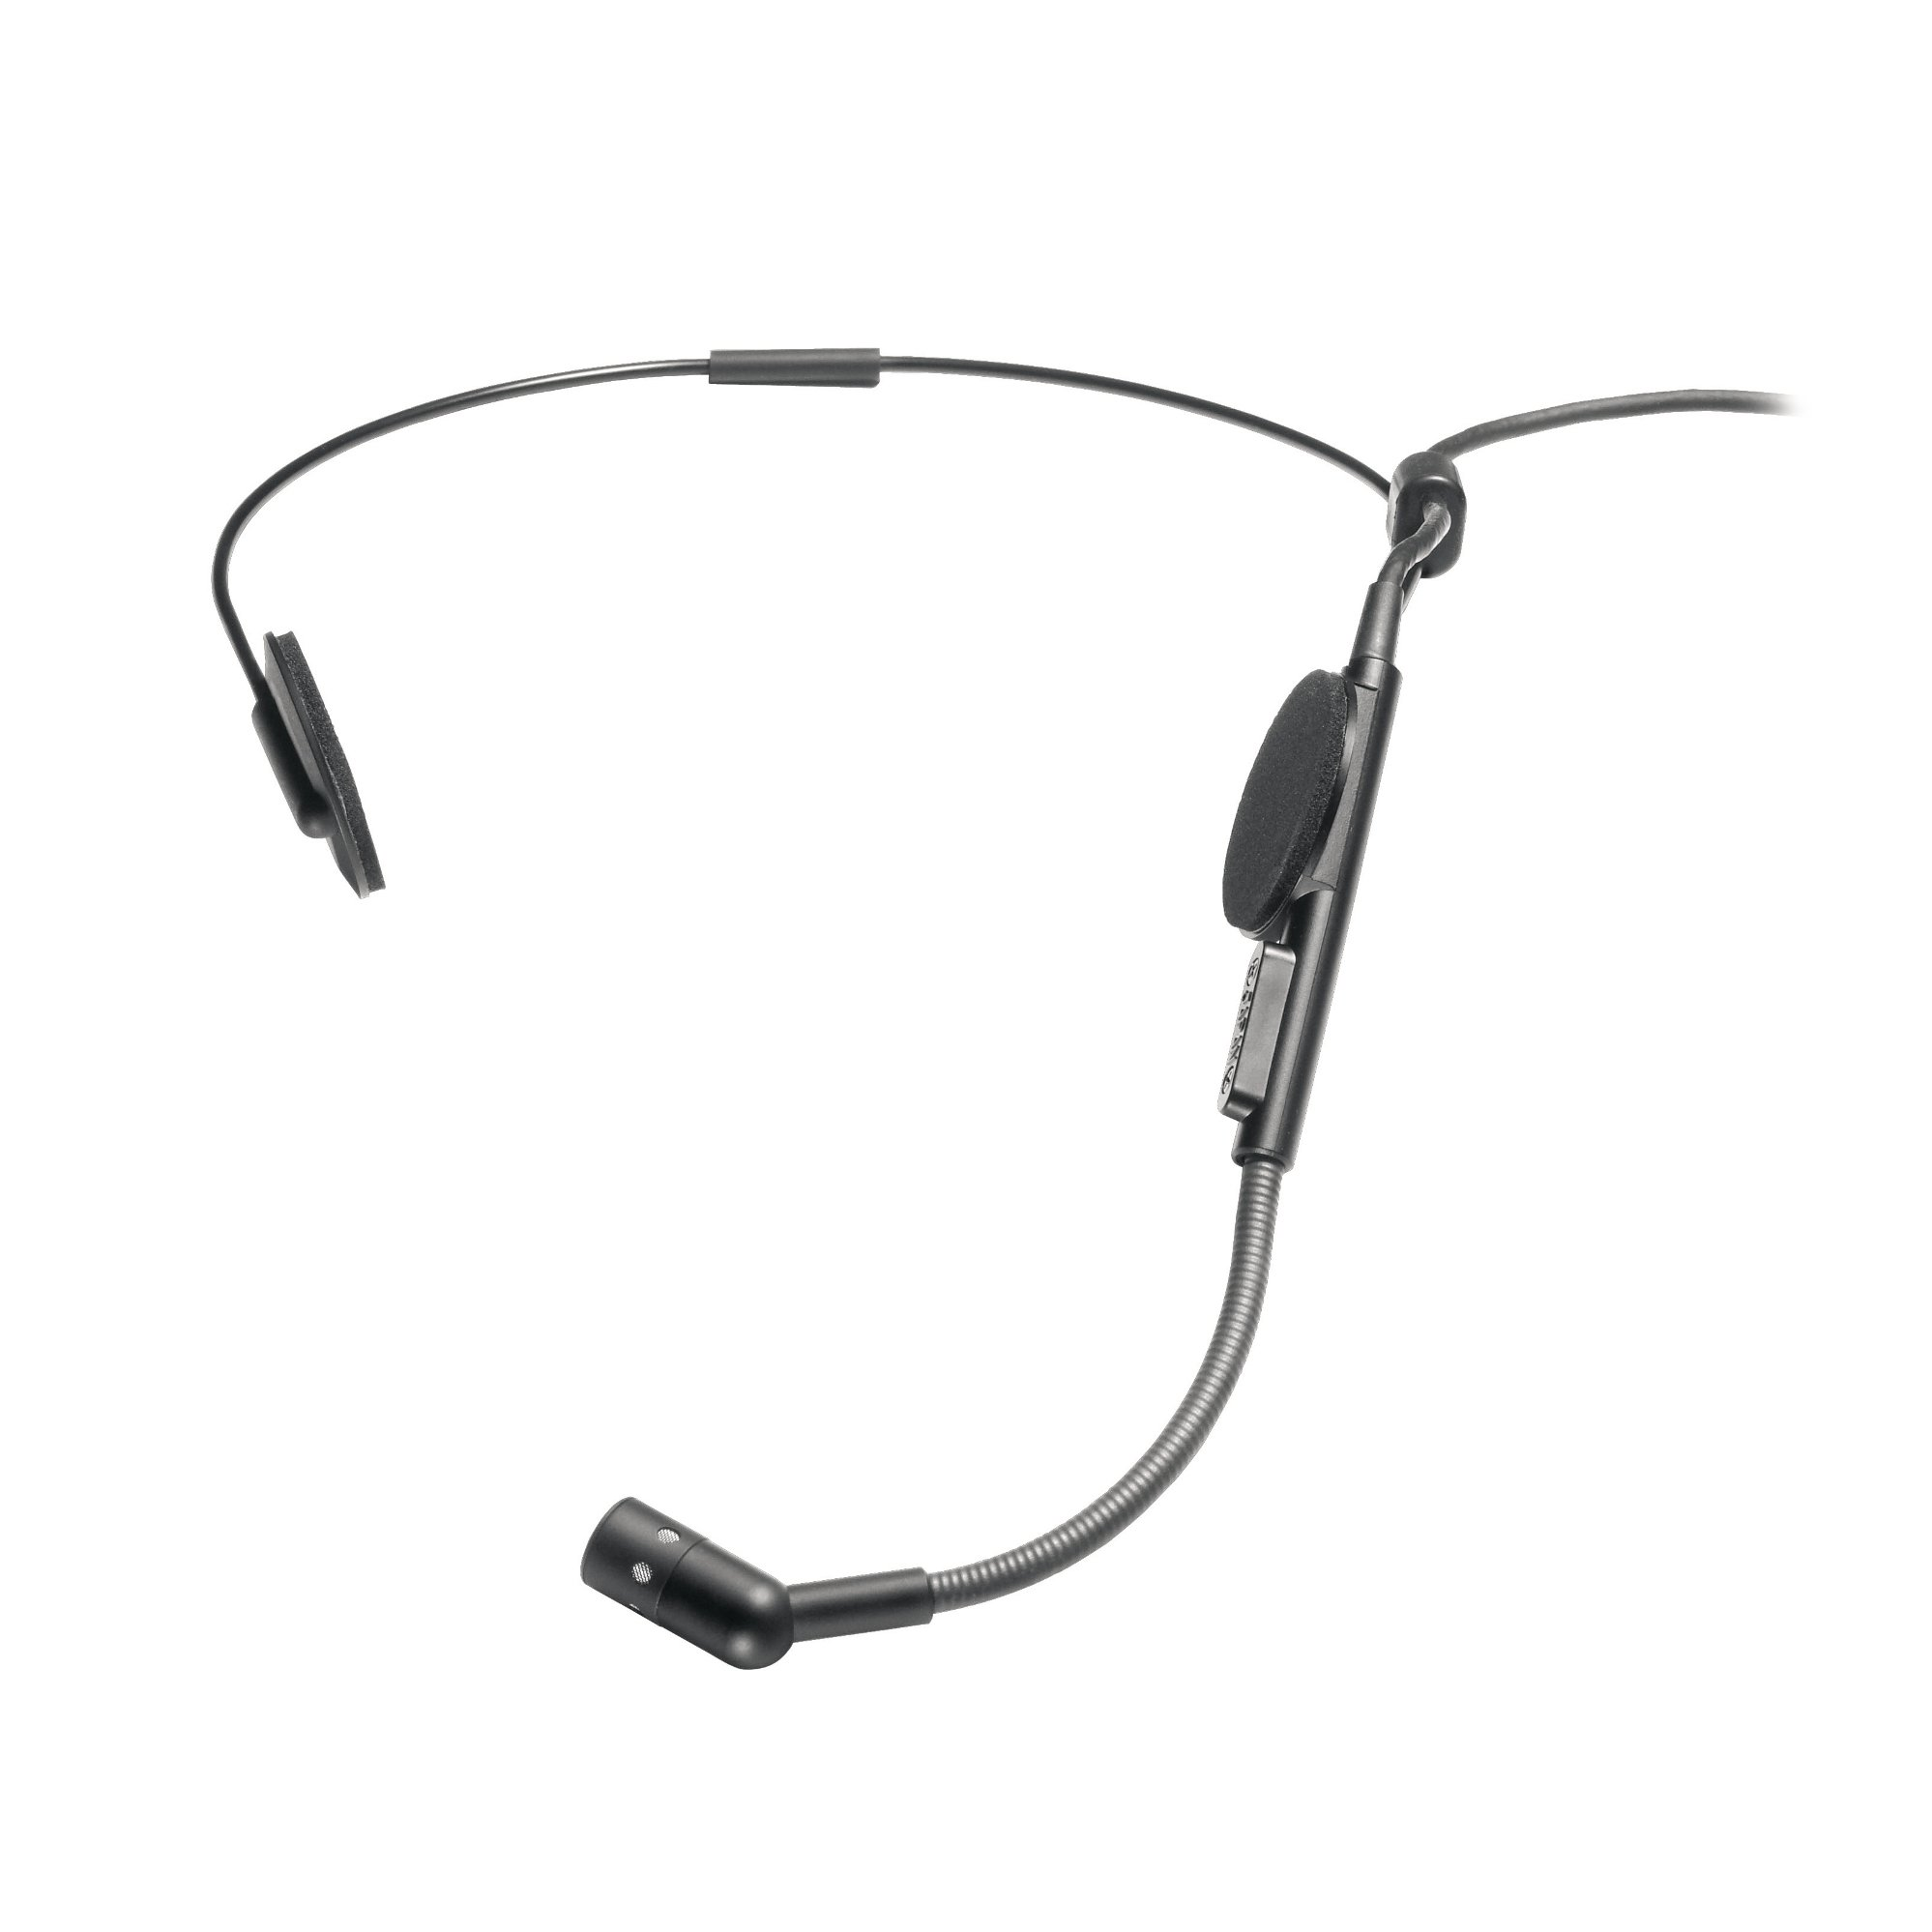 """Cardioid Condenser Headworn Microphone, 55"""" Cable Terminated with Locking 4-pin Connector for A-T UniPak Wireless Systems"""